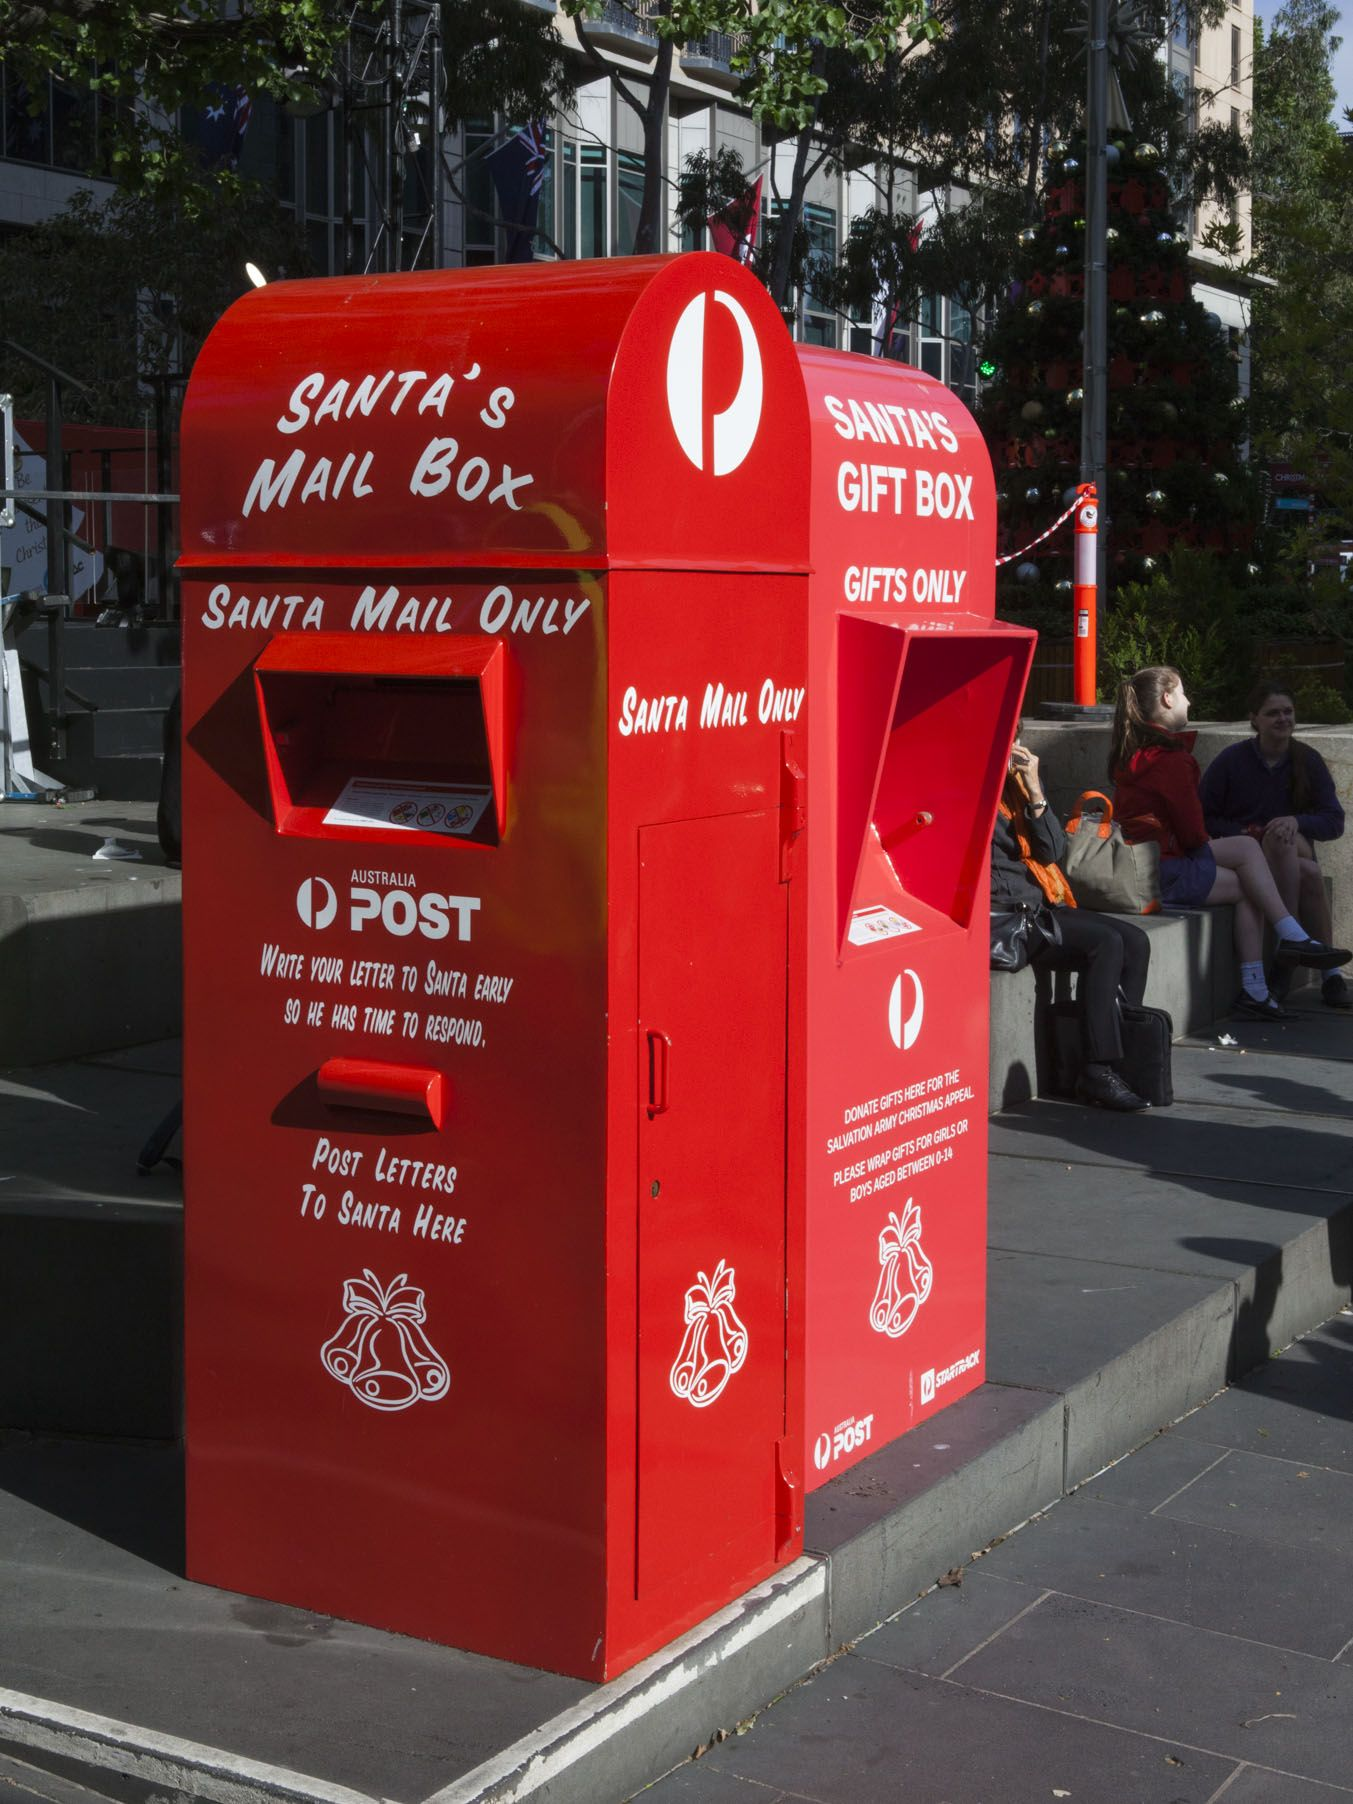 Here is a dedicated Santa Mail post box, but you can send